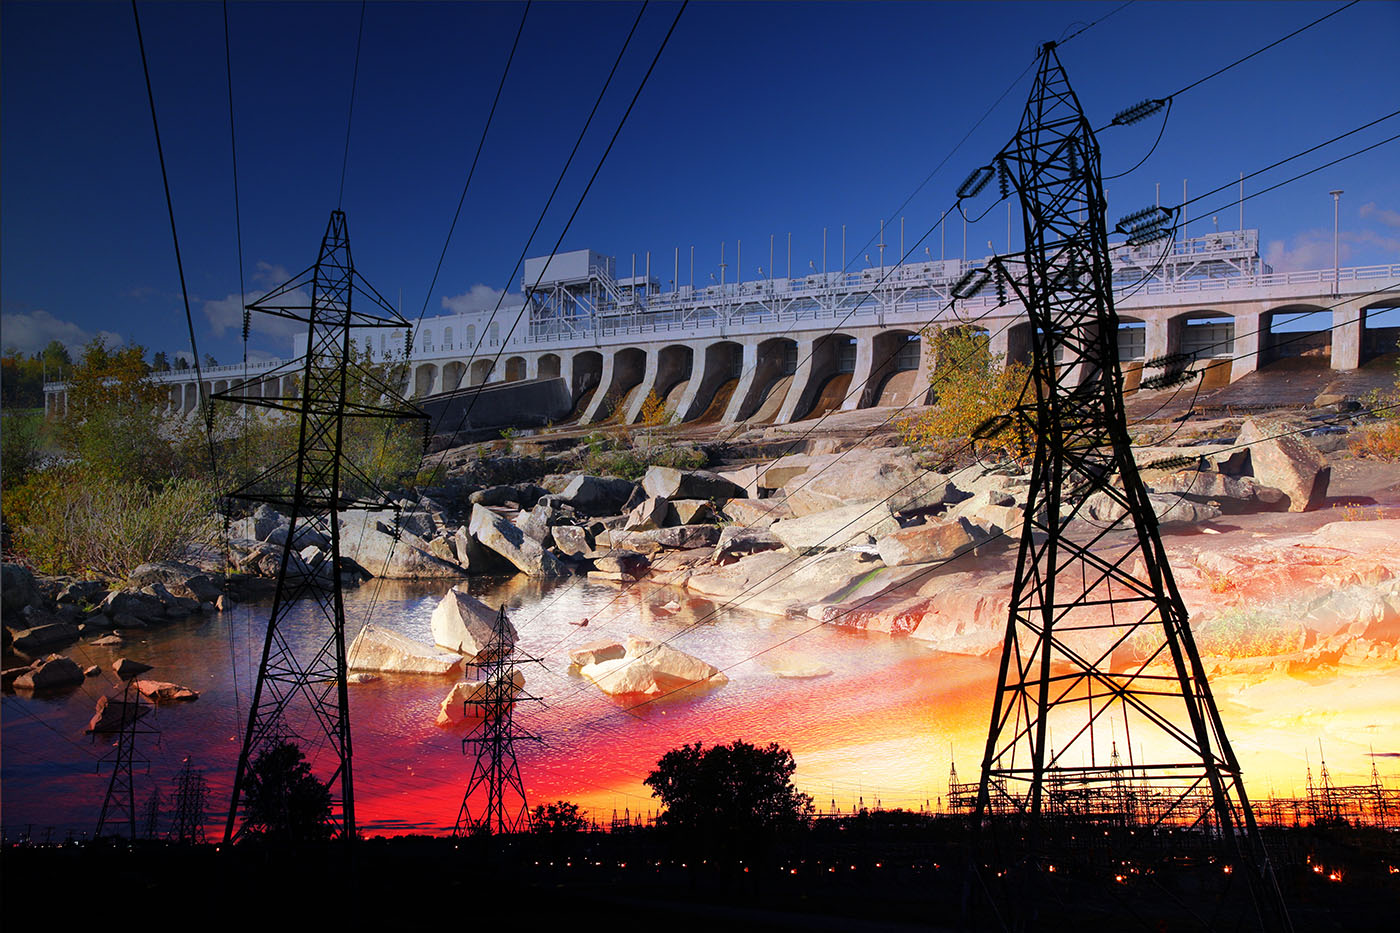 Electric Dam 03 - Dimensions: 5616 by 3744 pixels